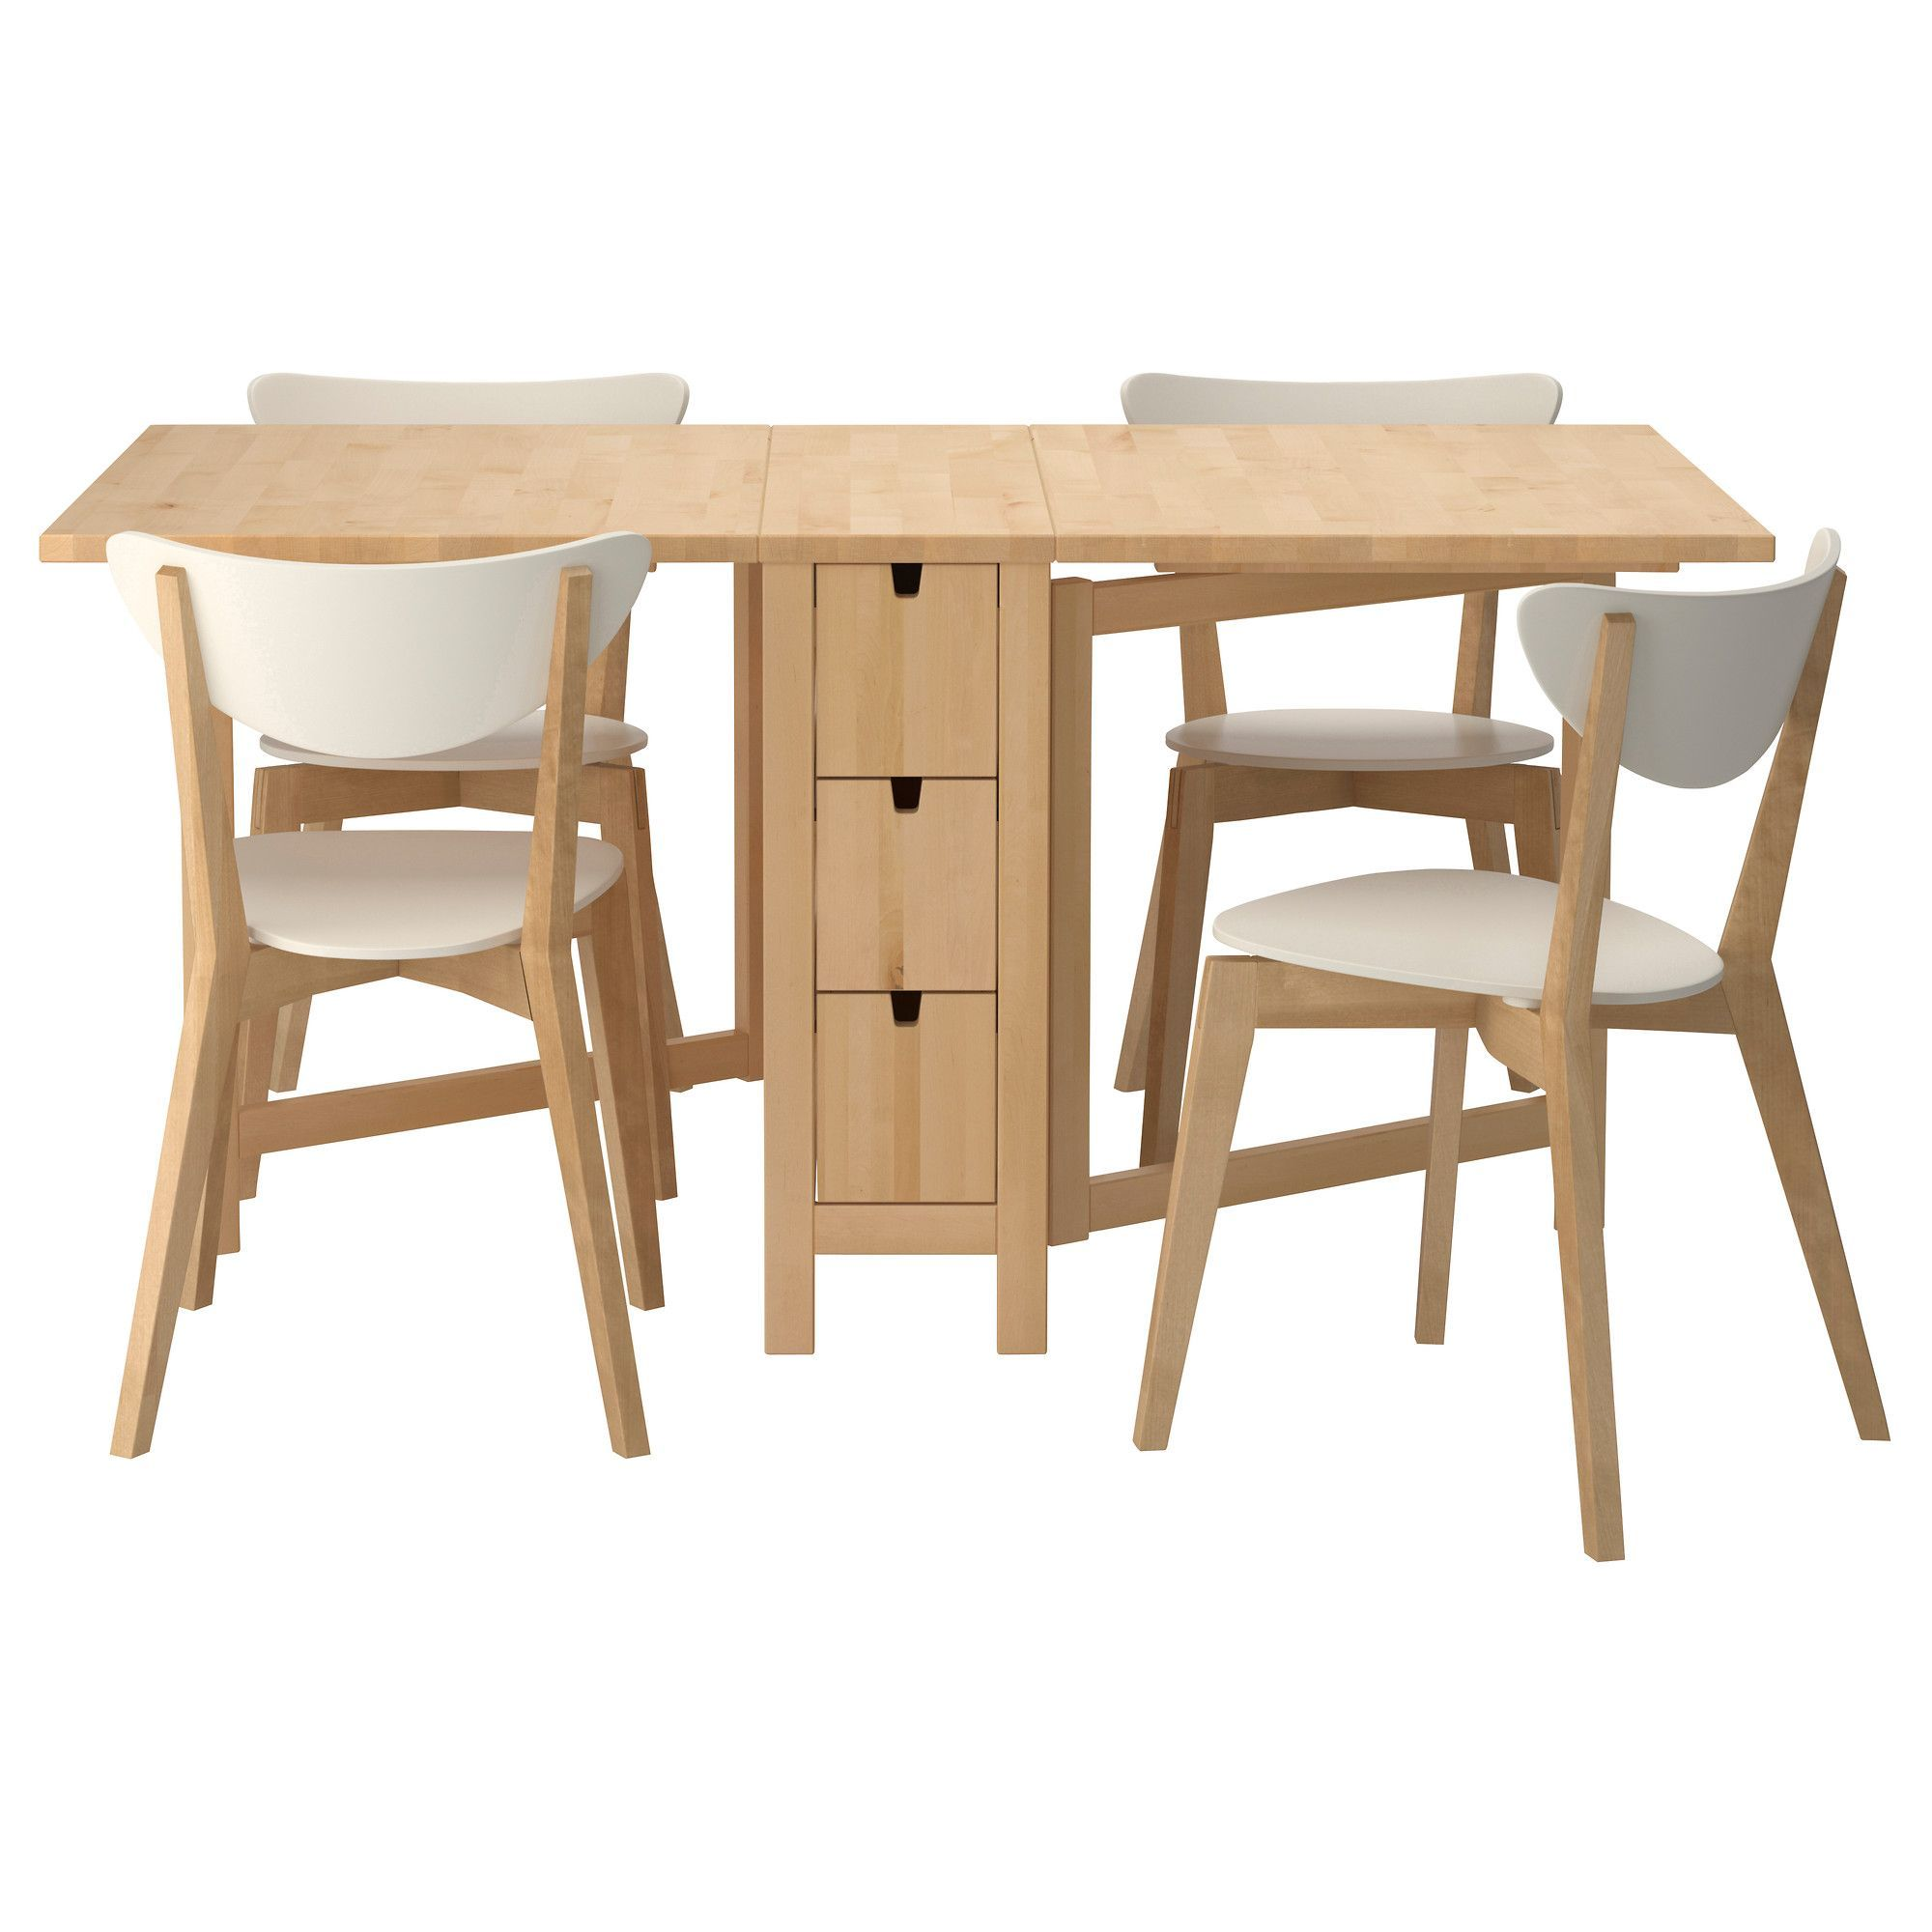 Ahorra Muebles Gorgeous Small Dining Table That Can Be Folded Complete